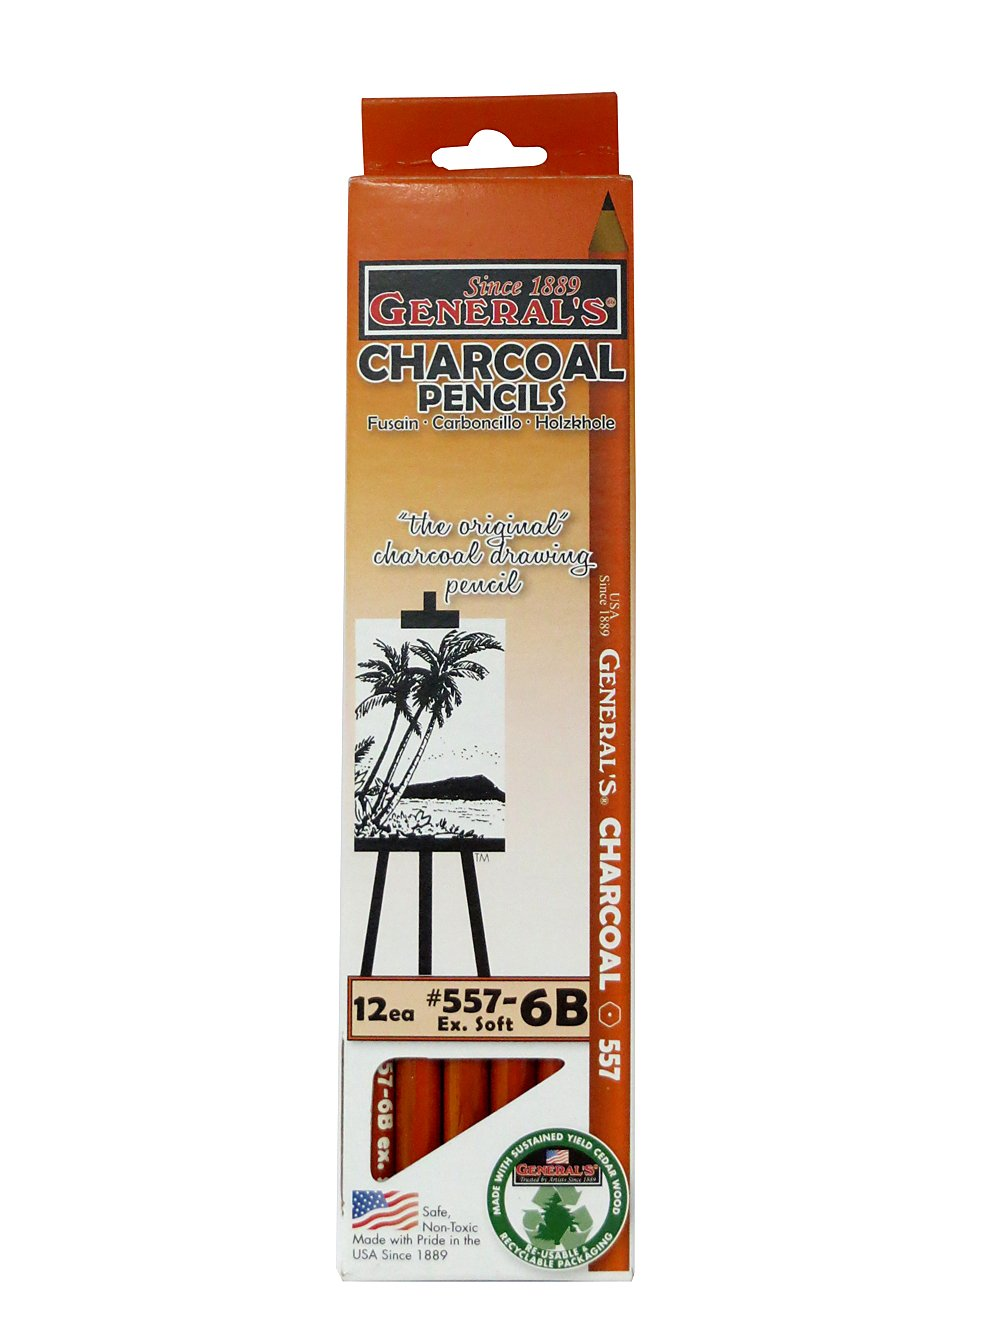 The Original Charcoal Pencil by General Pencil- Box of 12 Extra Soft 6B GEN-557-6B